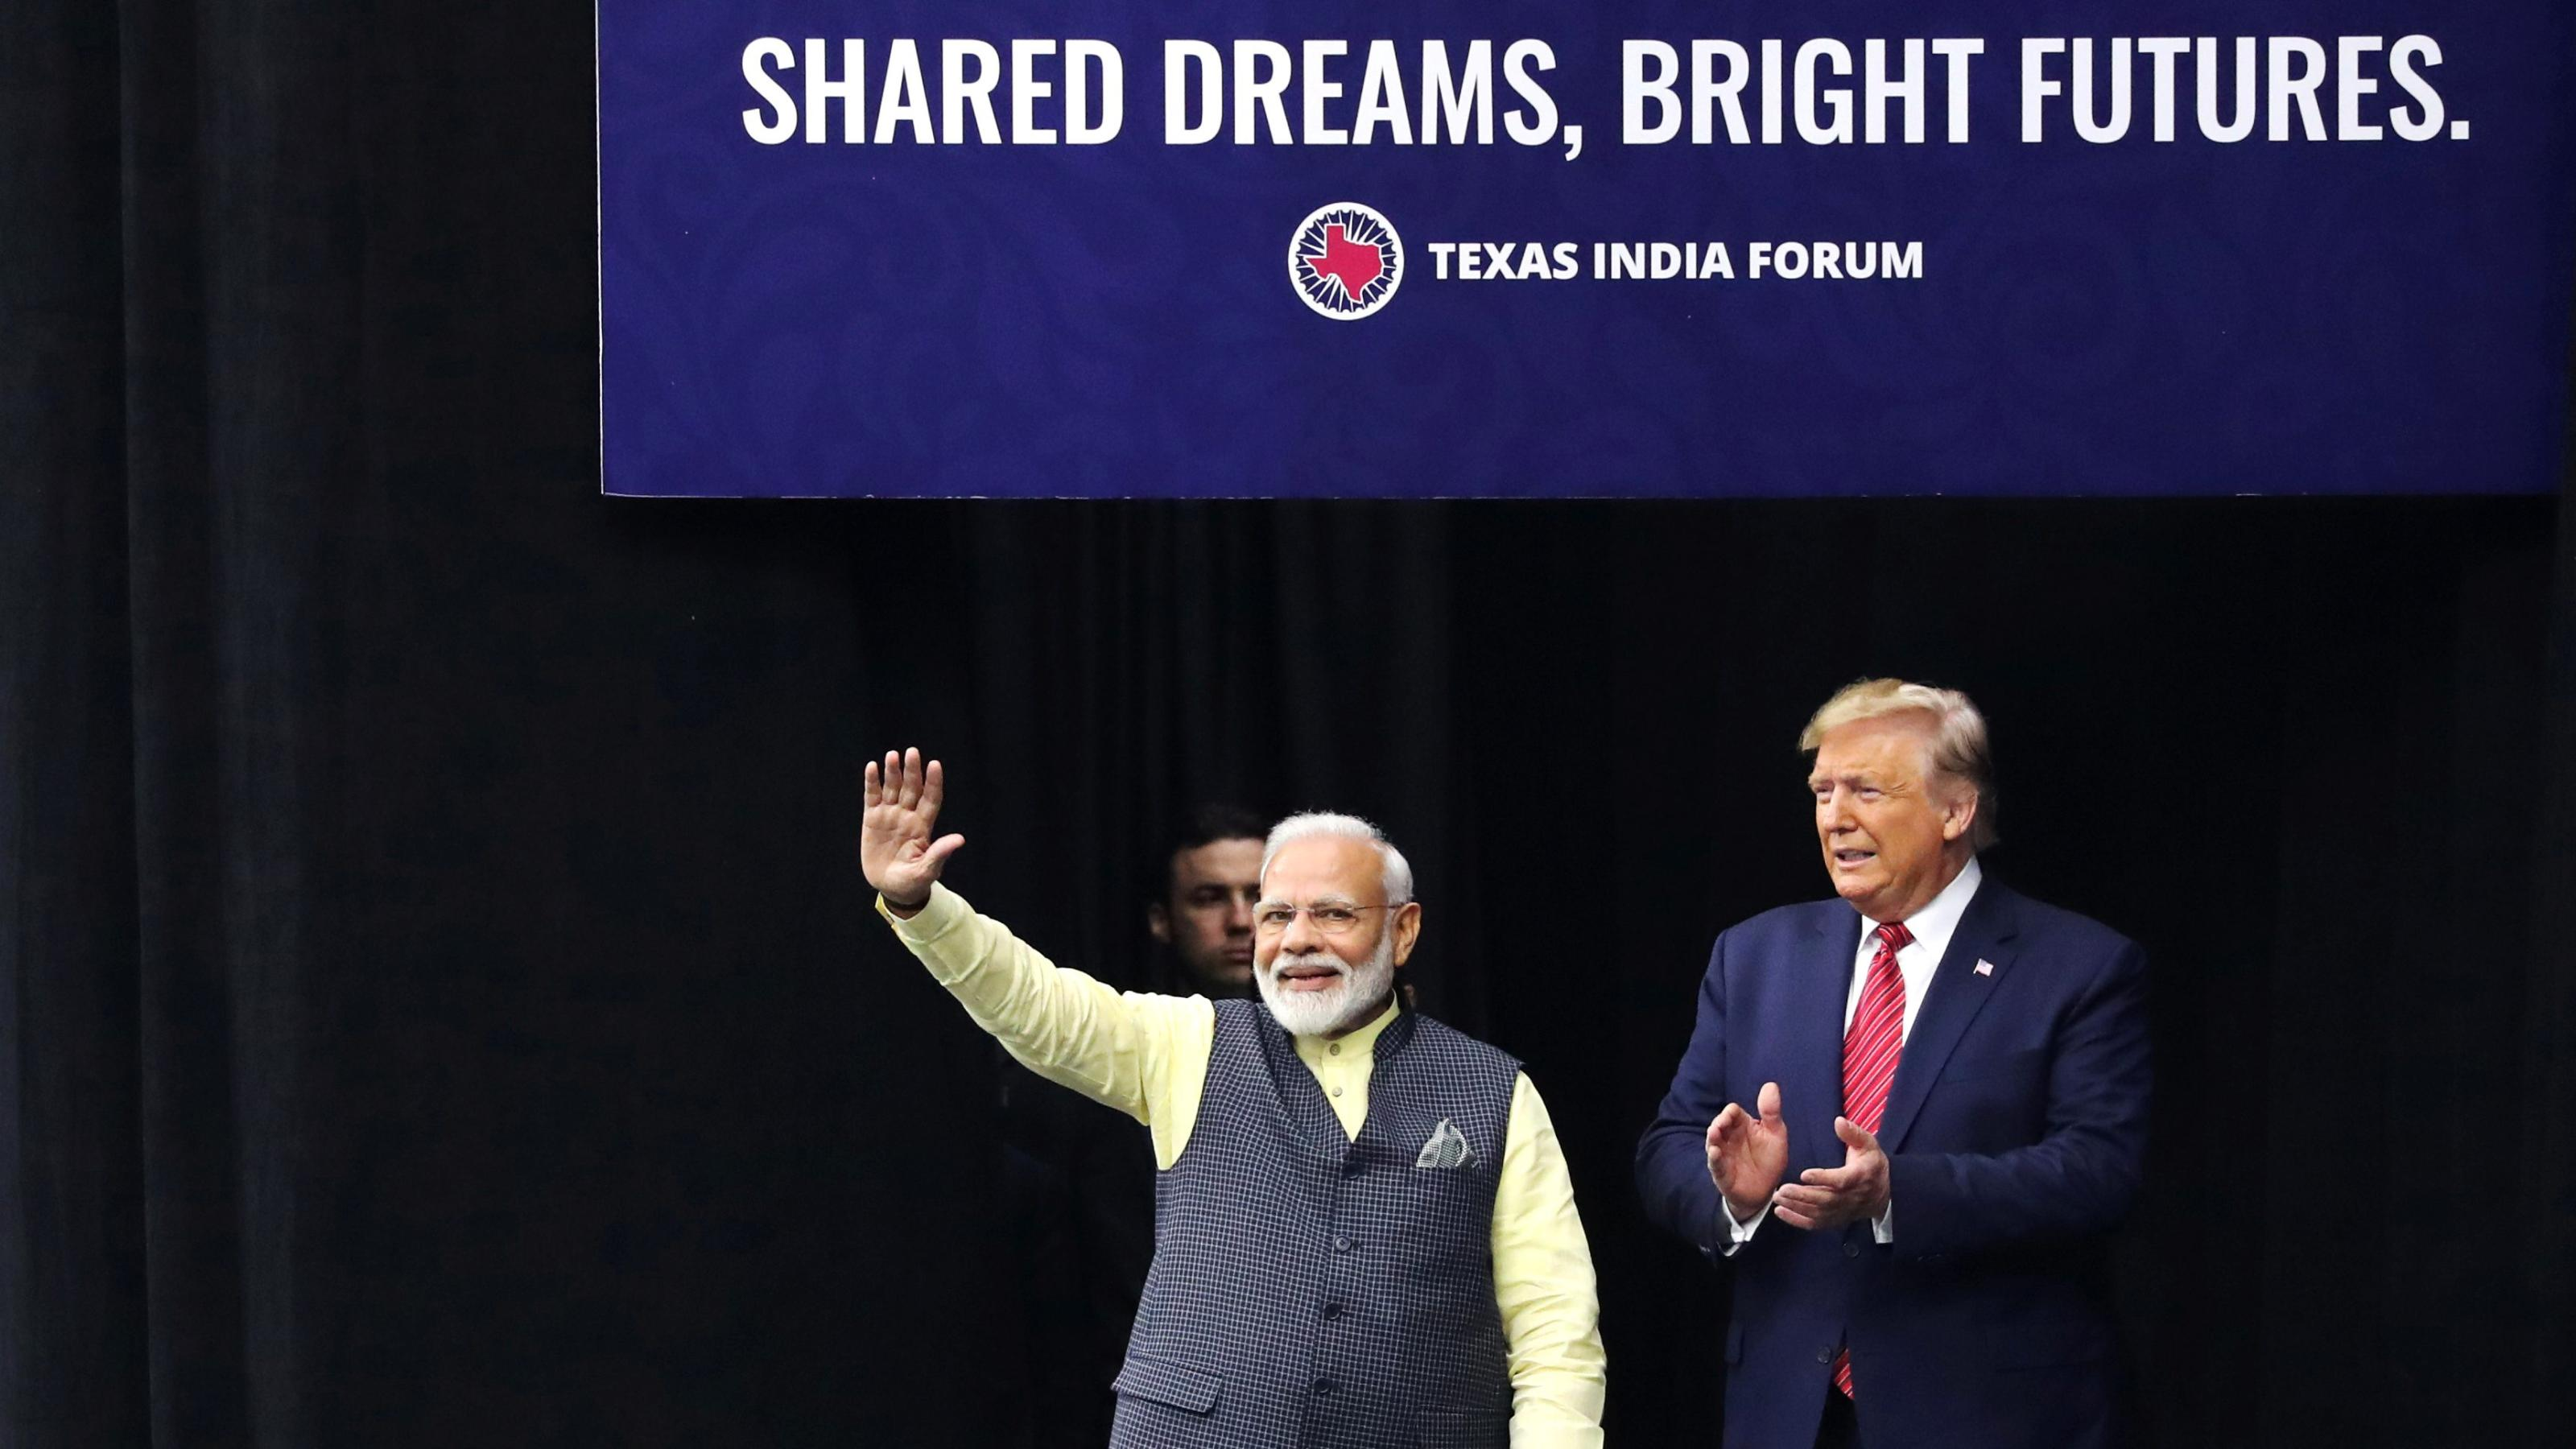 In Howdy, Modi! speech, Modi tells the US all's well with India